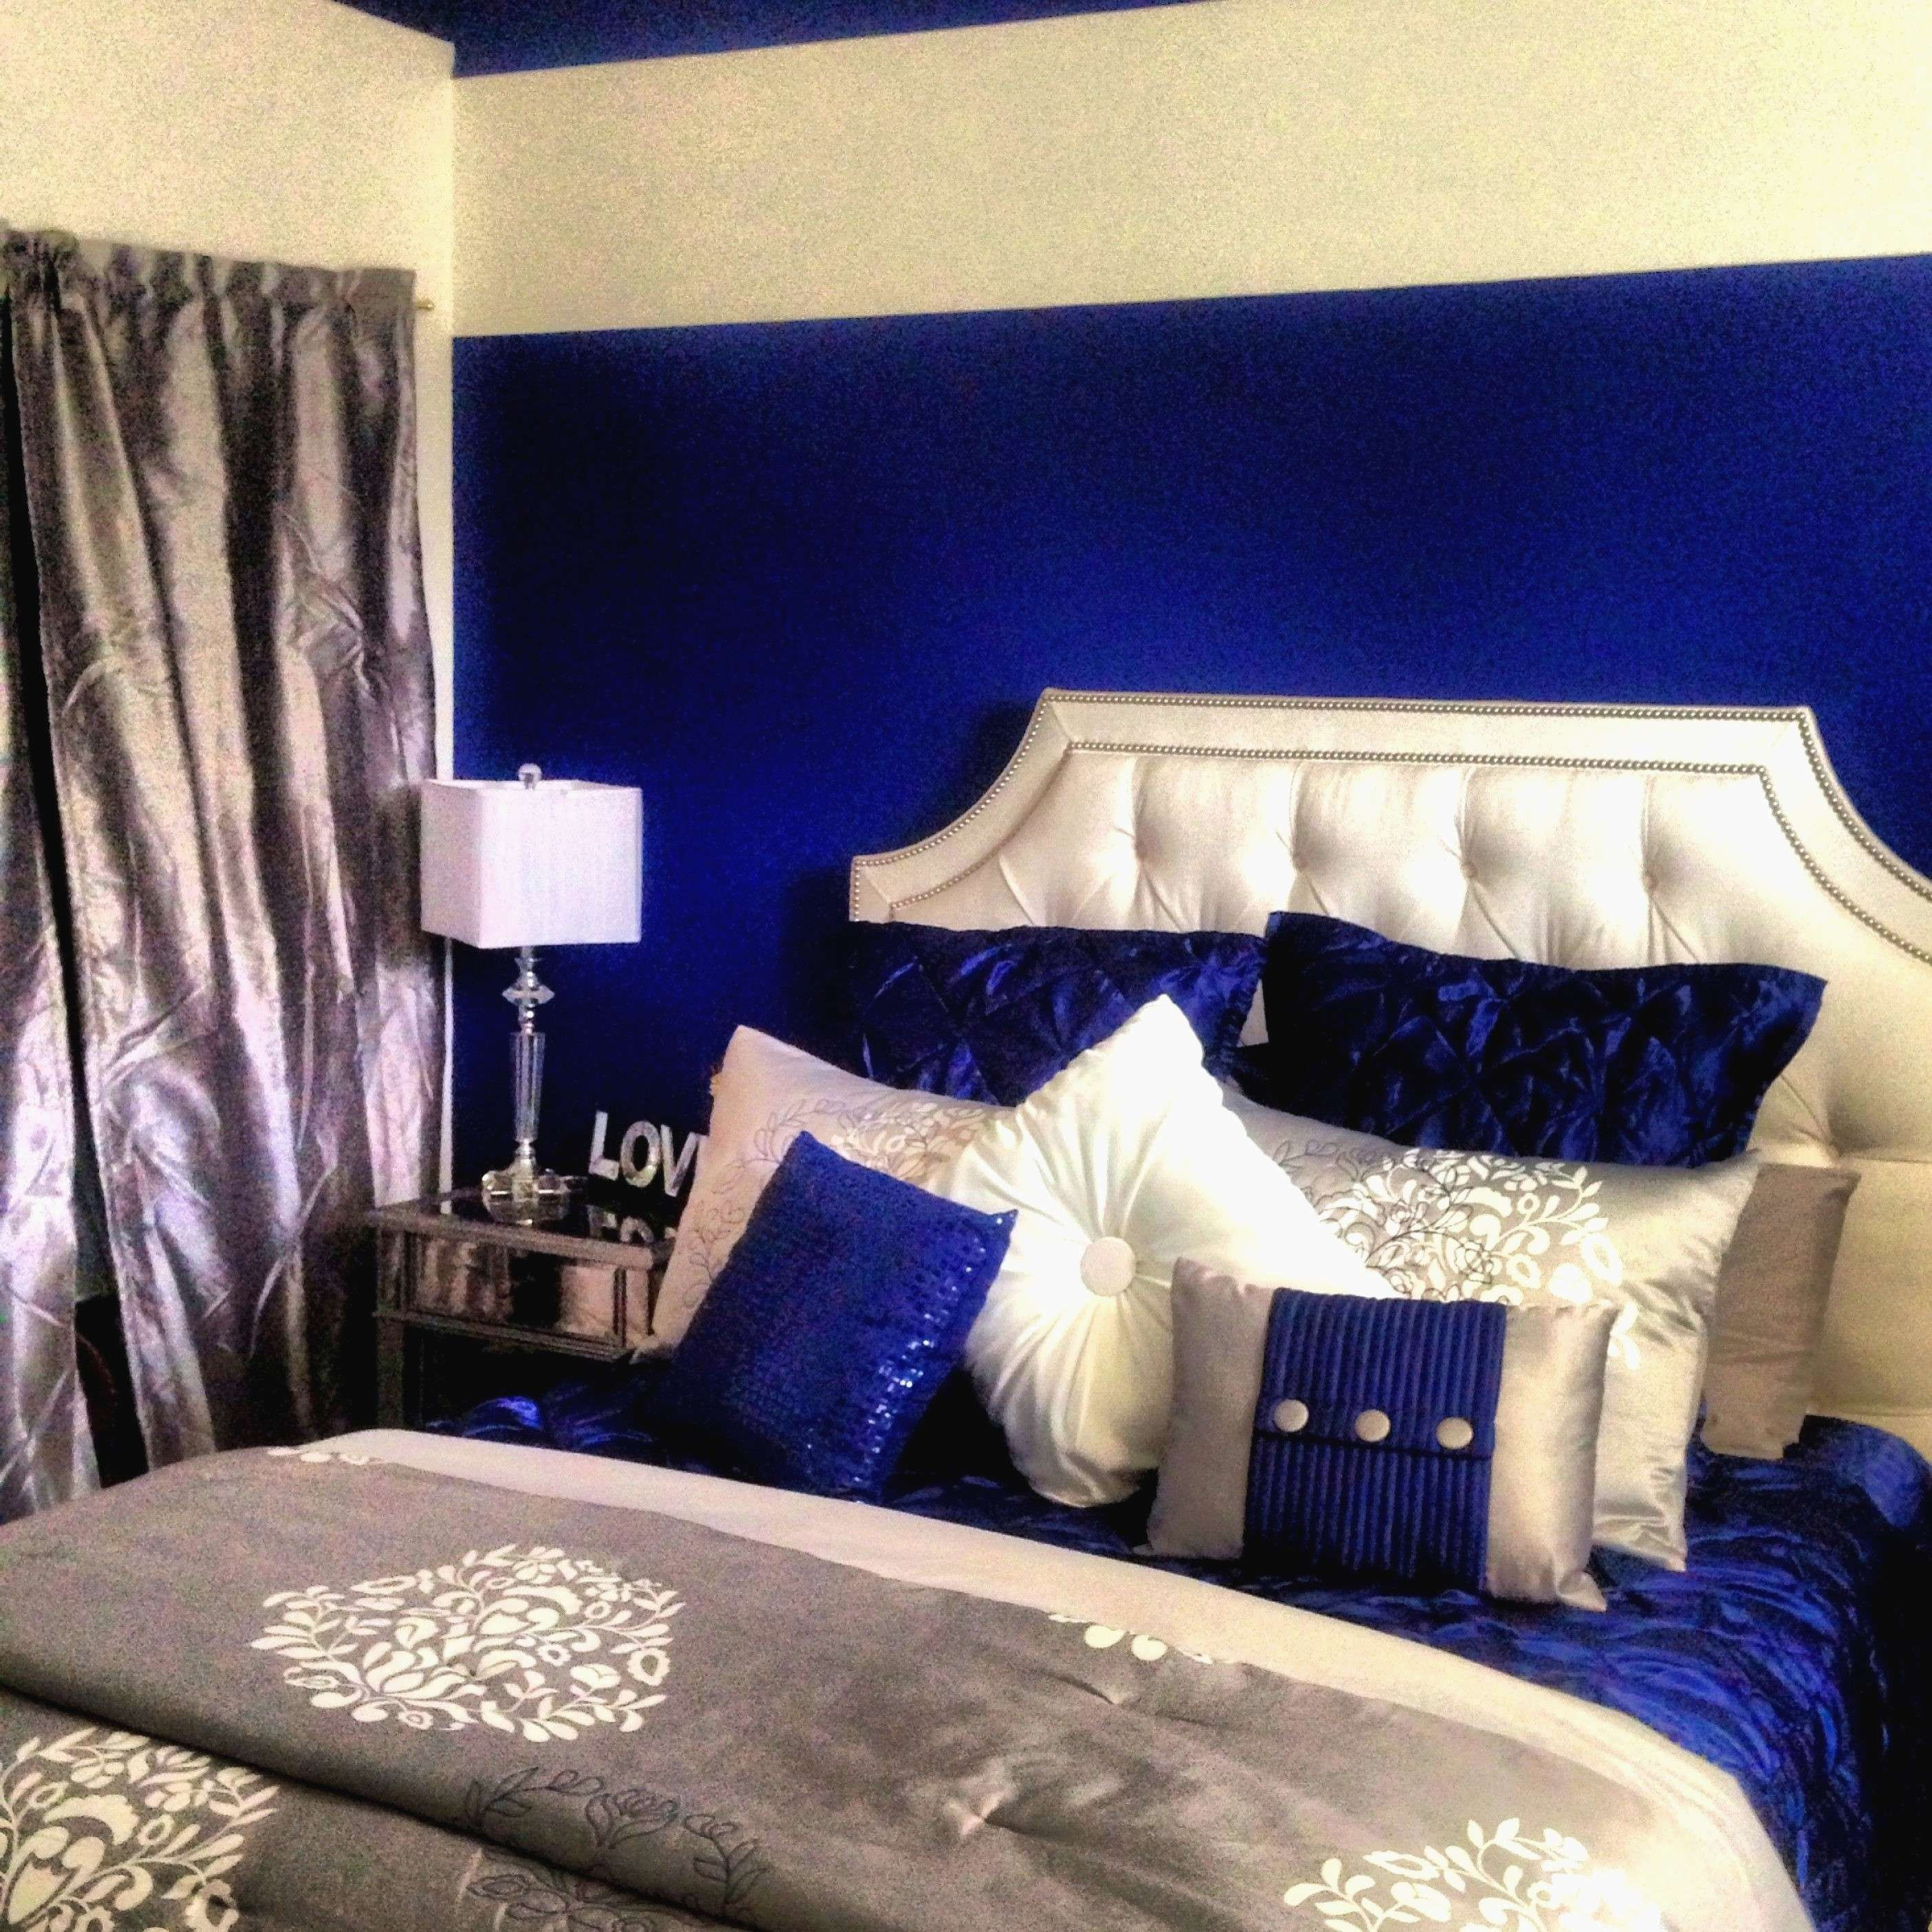 10 Royal Blue Bedroom Ideas Most Stylish And Attractive Blue Bedroom Decor Royal Blue Bedrooms Blue And Gold Bedroom